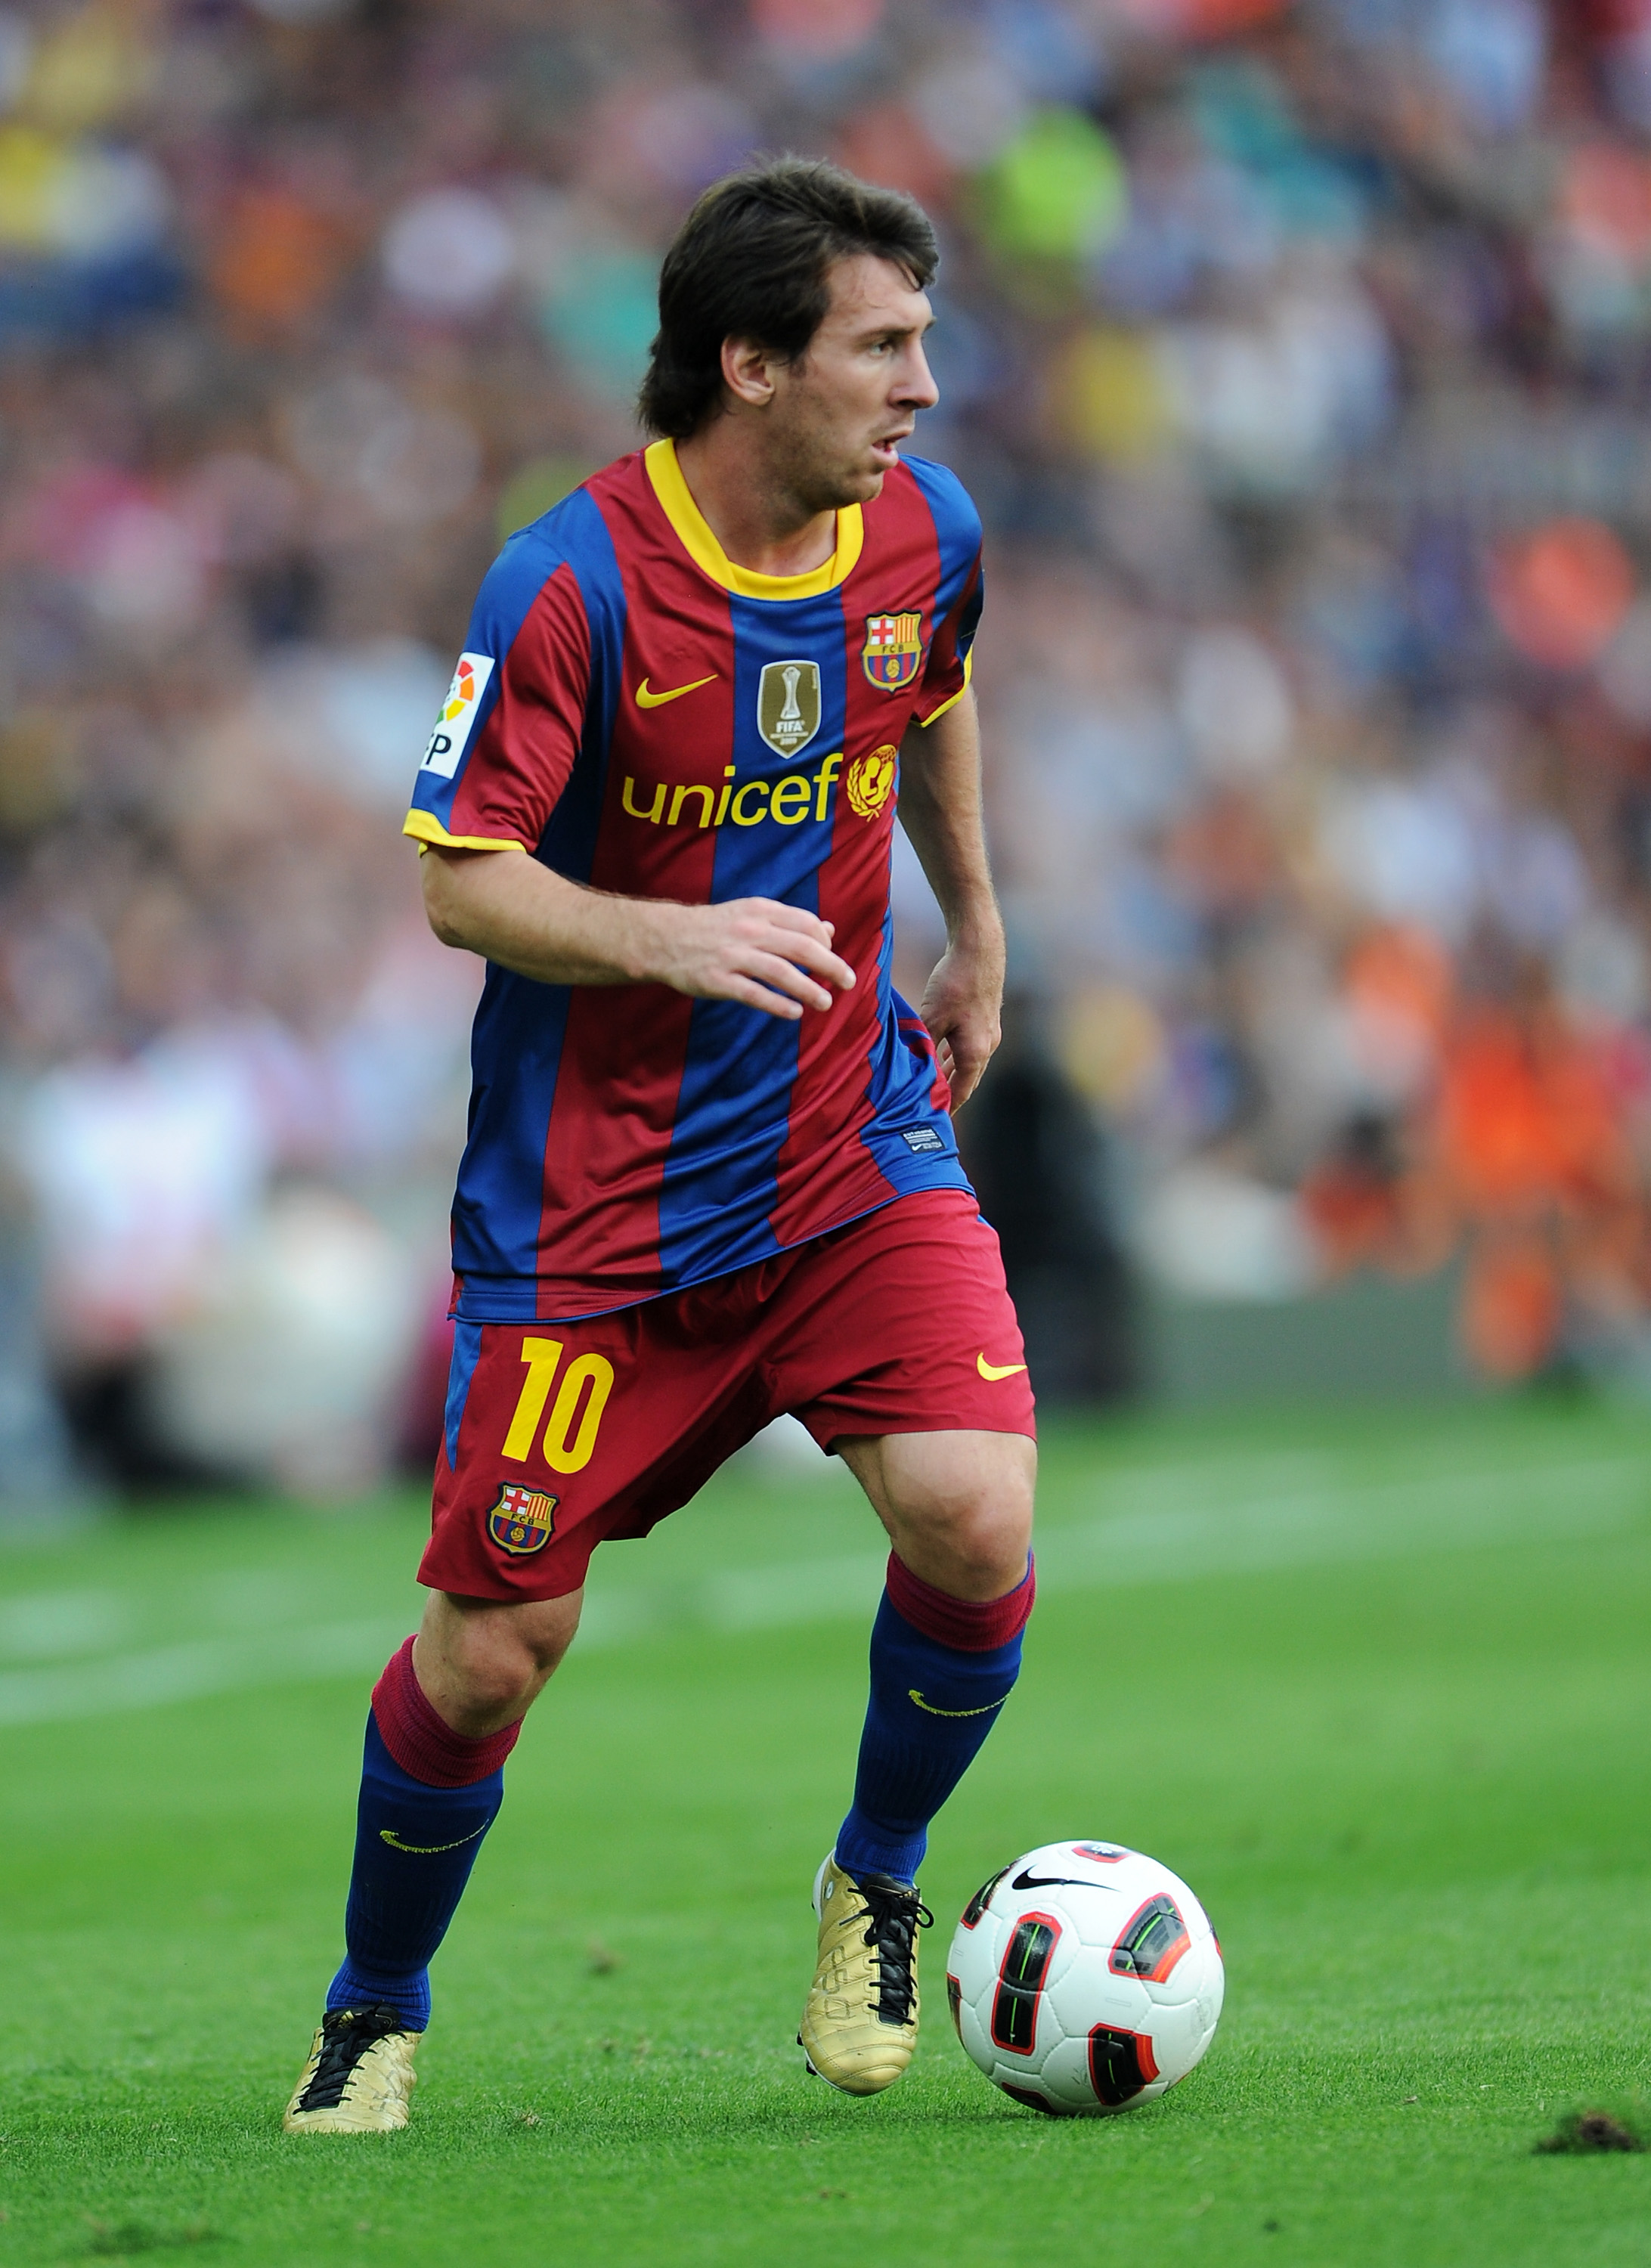 BARCELONA, SPAIN - SEPTEMBER 11:  Lionel Messi of Barcelona controls the ball during the La Liga match between Barcelona and Hercules at the Camp Nou stadium on September 11, 2010 in Barcelona, Spain. Barcelona lost the match 2-0.  (Photo by Jasper Juinen